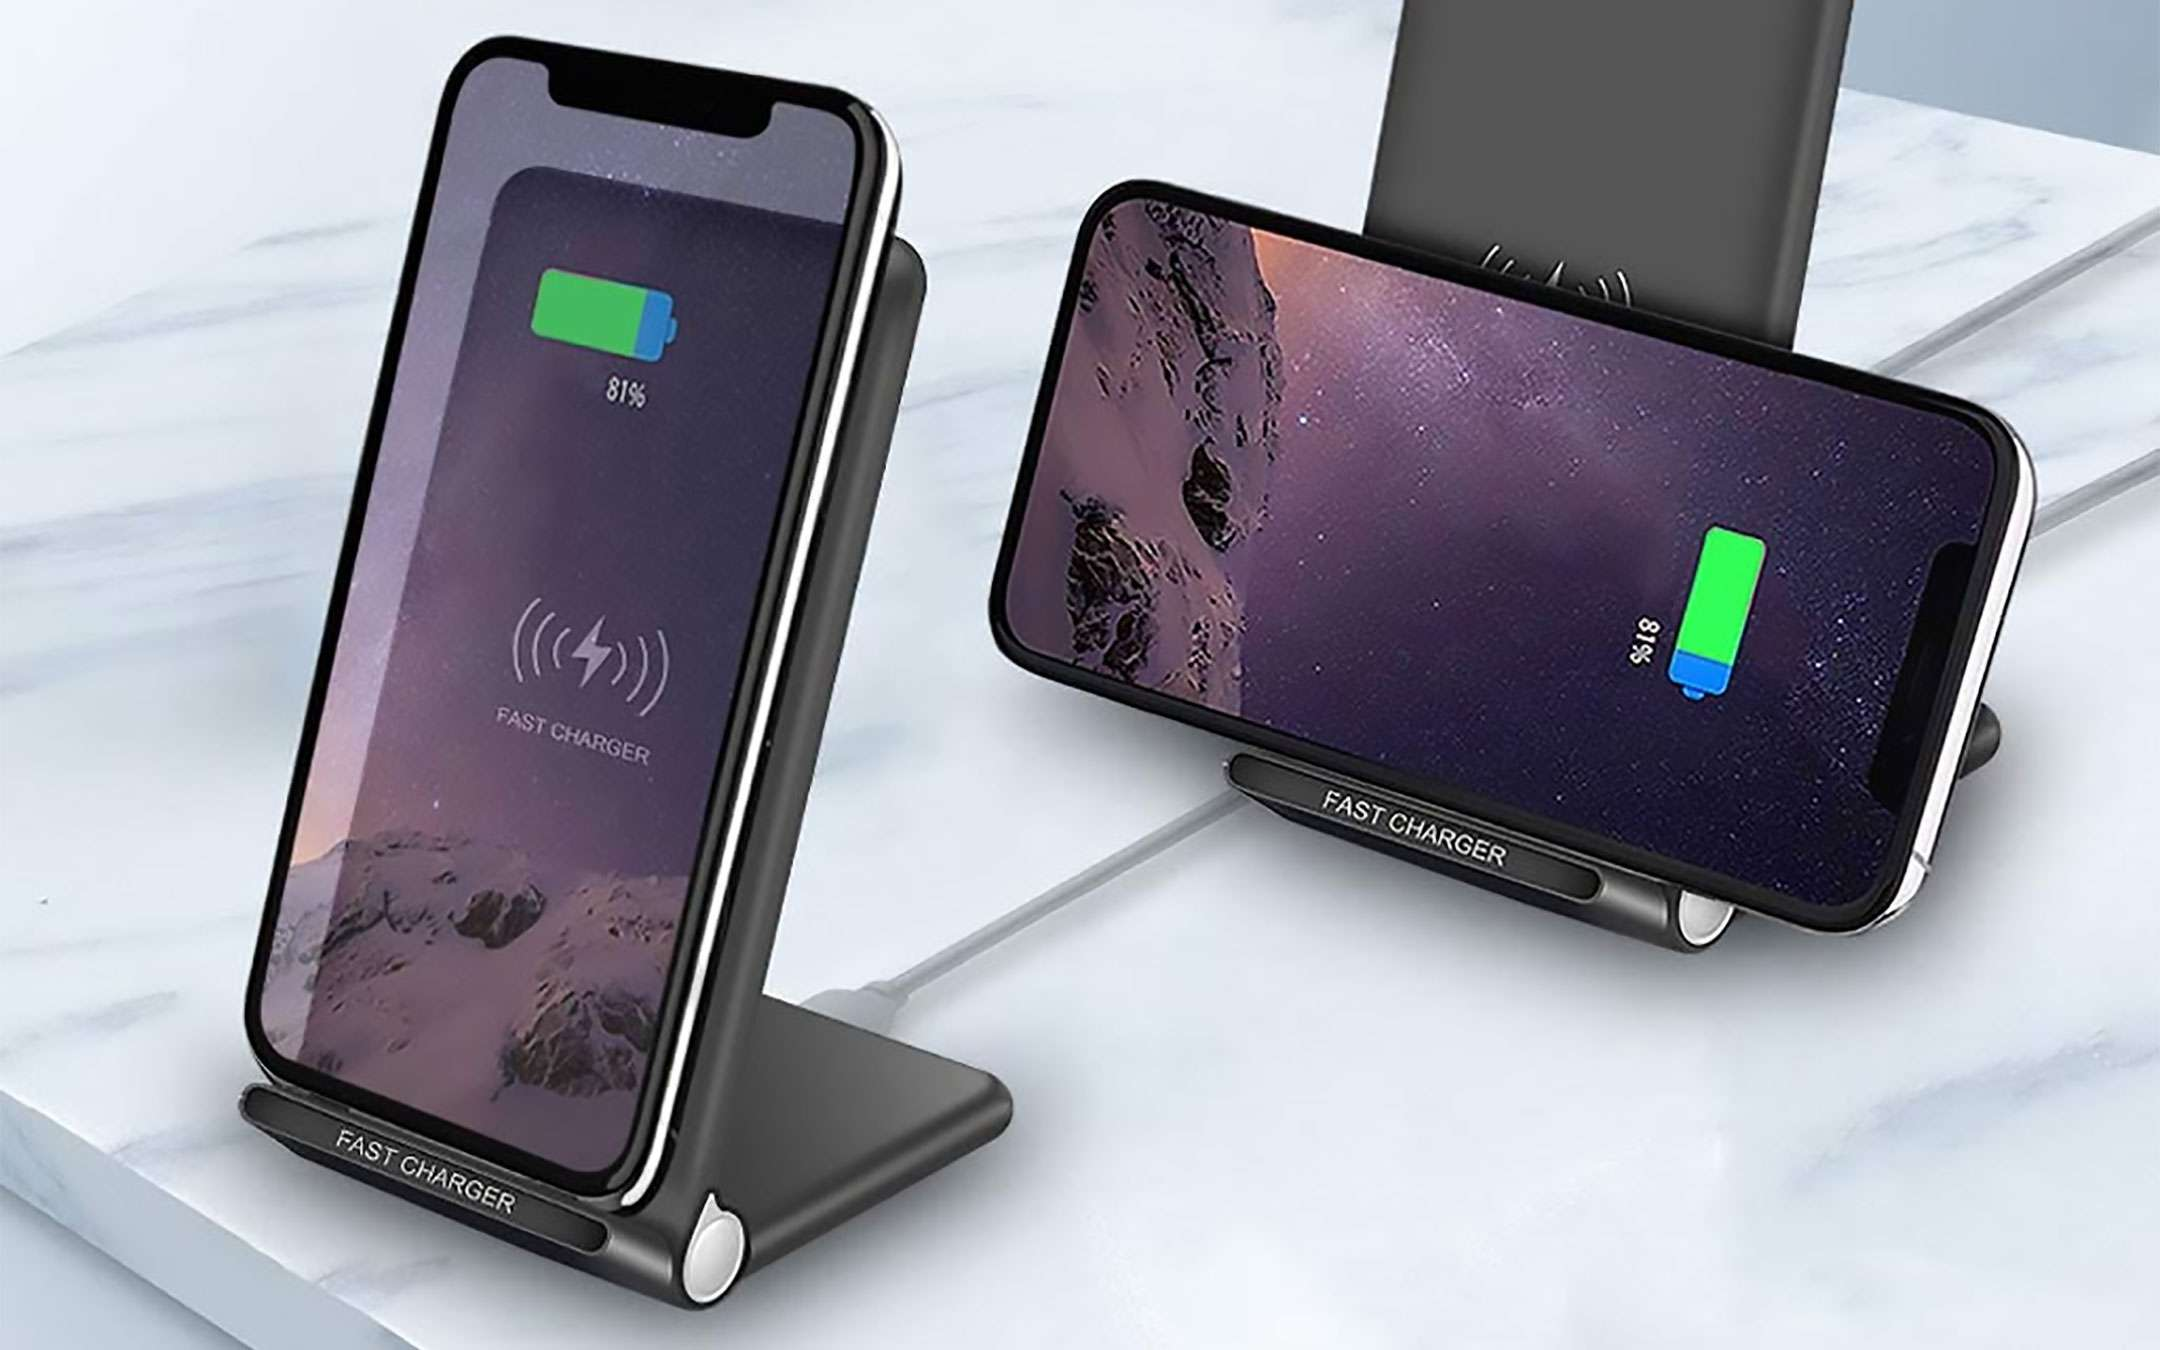 Two docks for wireless charging for a few euros